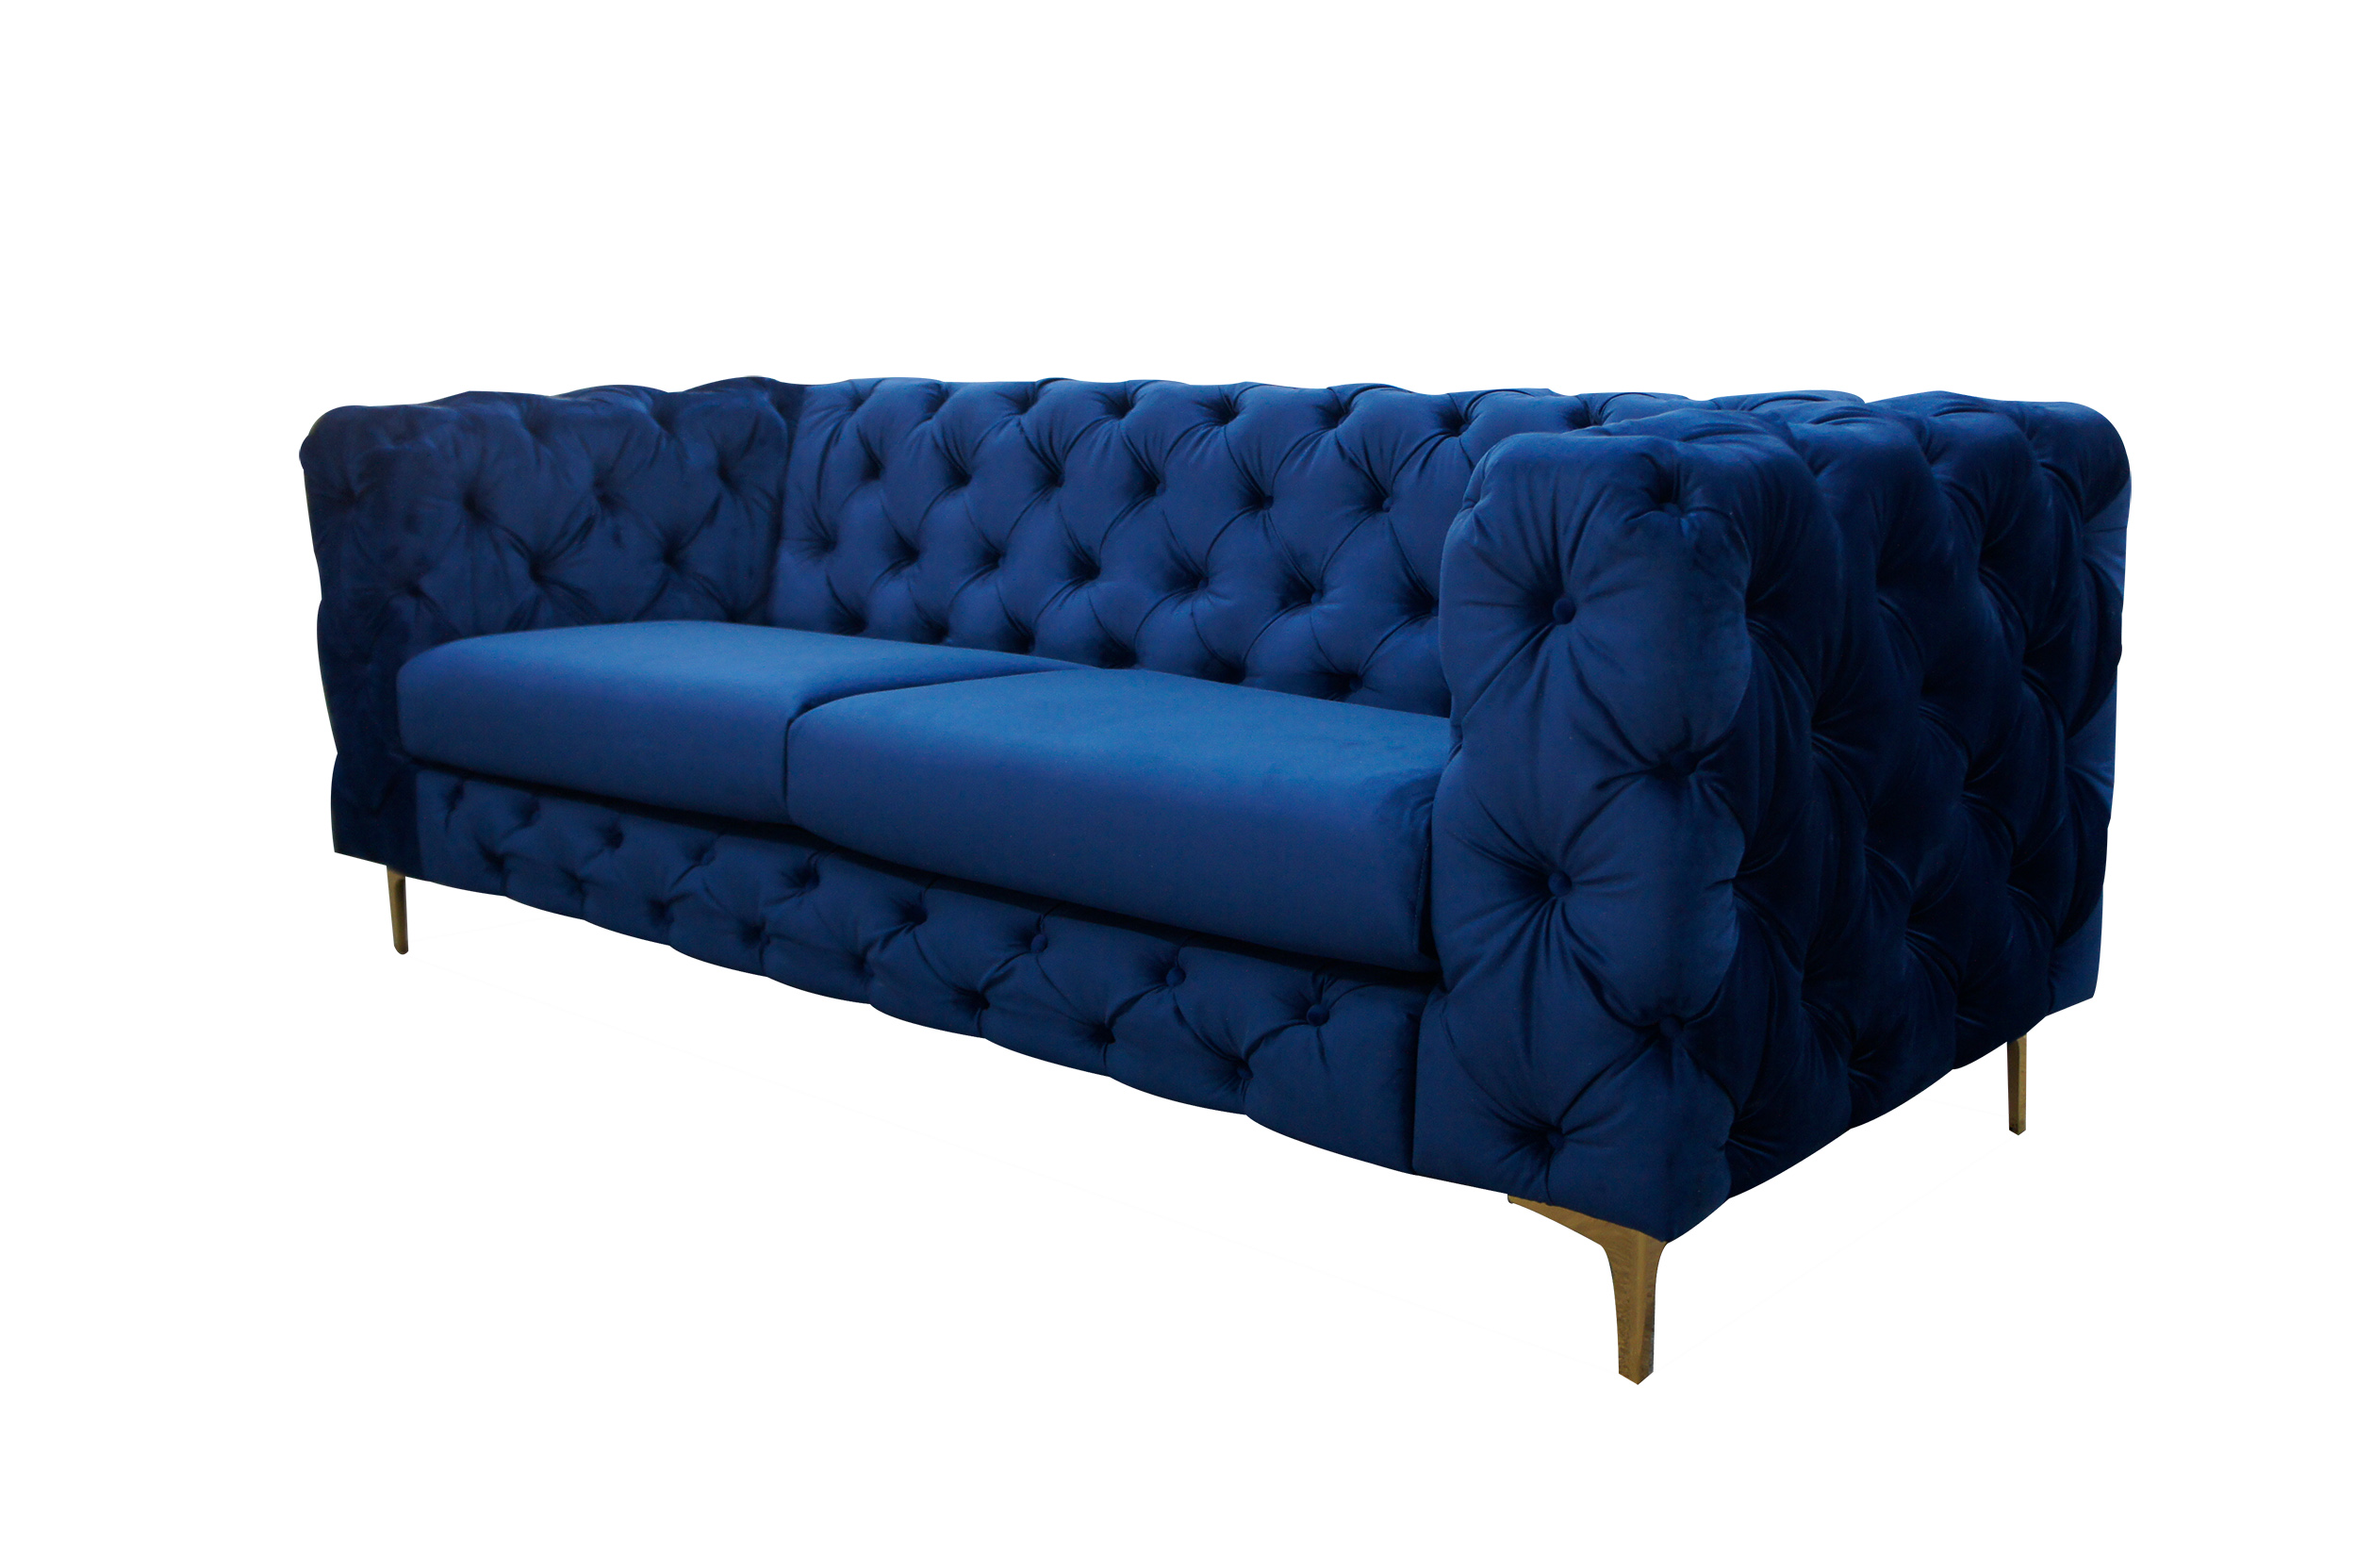 Full Size of Lc Home 3er Sofa Dreisitzer Couch Kingdom Chesterfield Samt Barock Konfigurator Big Mit Hocker Chippendale Leder Brühl Rolf Benz Günstige Schlaffunktion Sofa Sofa Samt